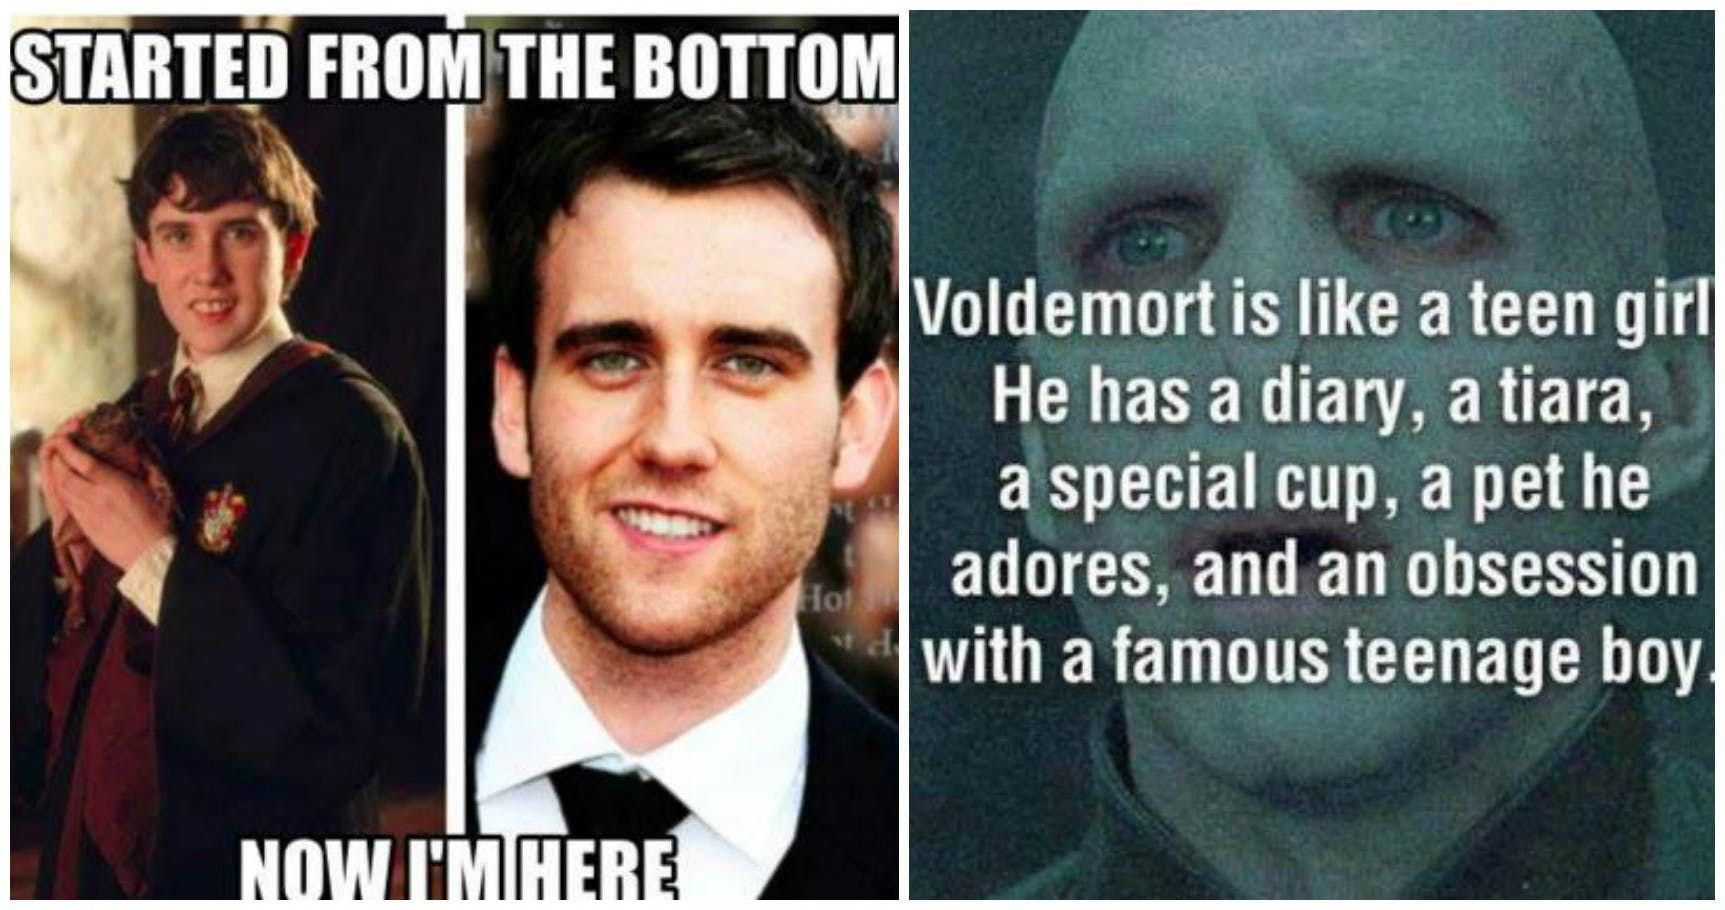 15 Hilarious Harry Potter Memes Only True Fans Will Understand Harrypotterme Harry Potter Memes Clean Harry Potter Memes Hilarious Harry Potter Quotes Funny